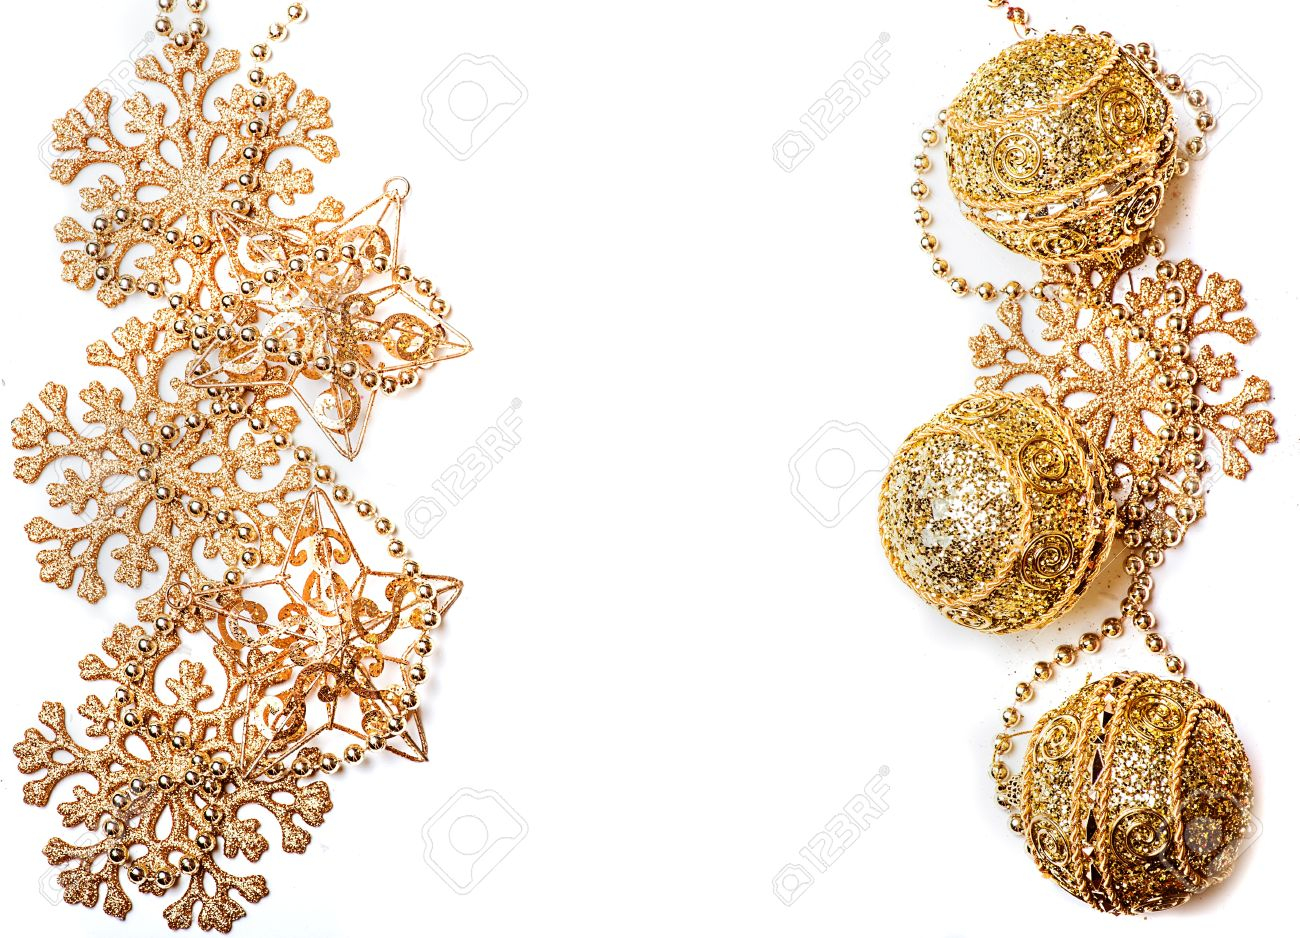 golden christmas decorations border or frame gold snowflakes stars beads and balls stockfoto